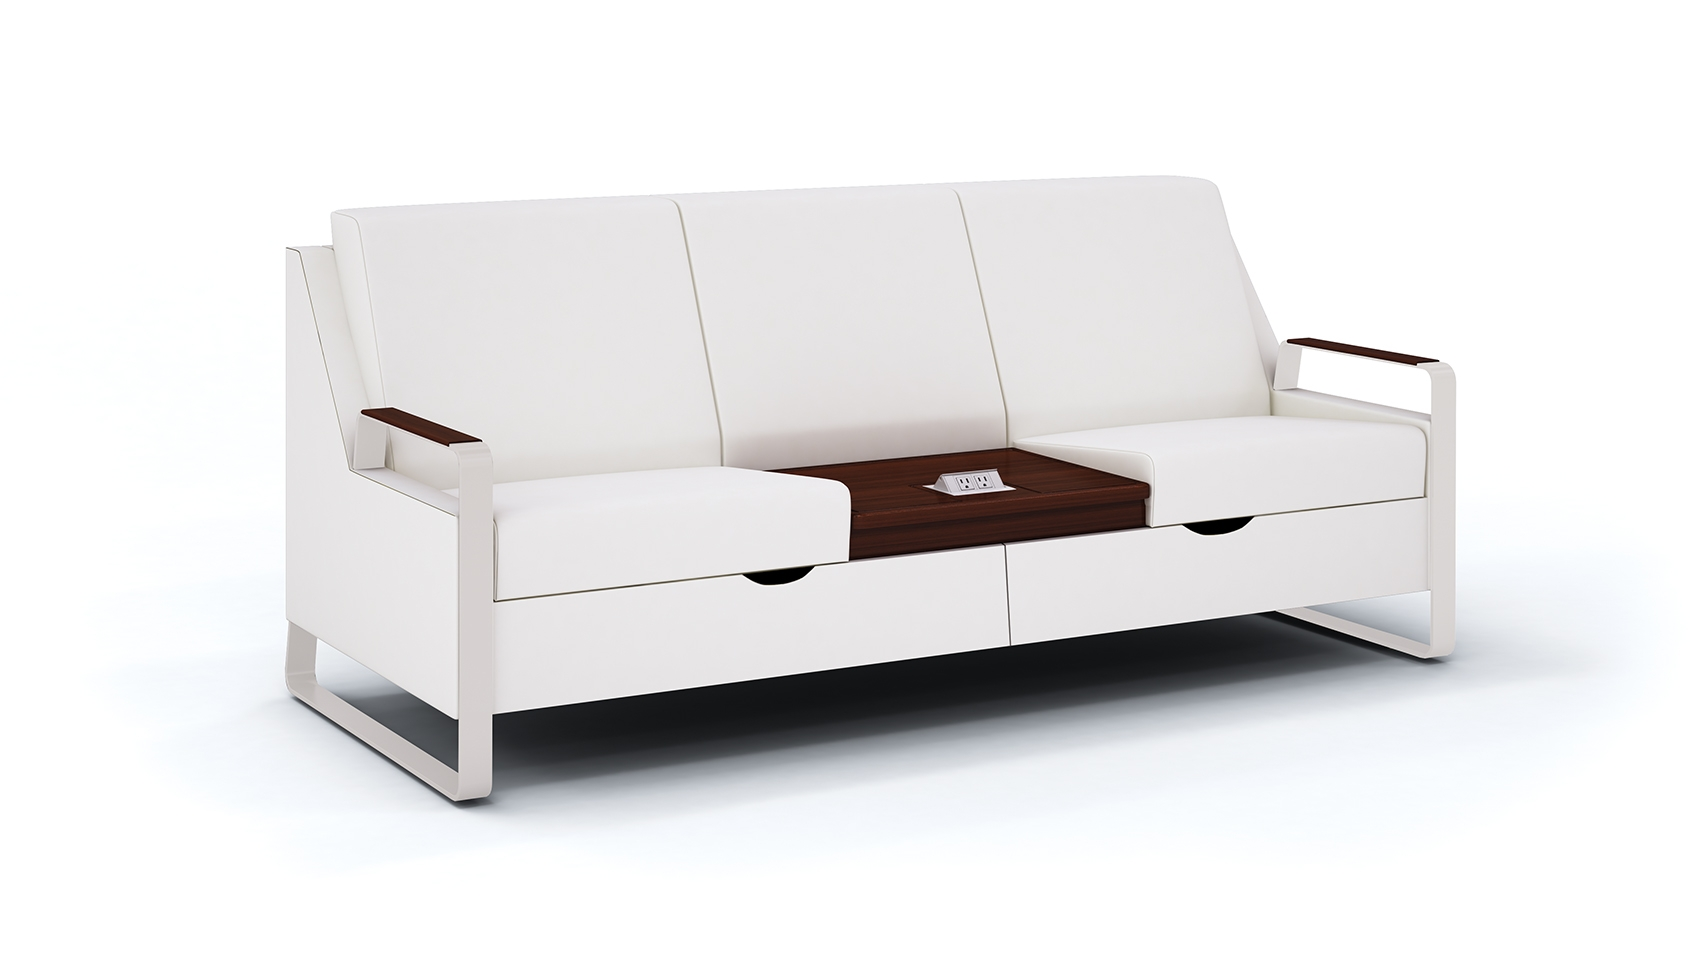 Beau Reverie Is A Sleepover Sofa For Healthcare Spaces That Offers Supreme Form  And Function. Thoughtfully Designed With Multiple Arm Styles, ...